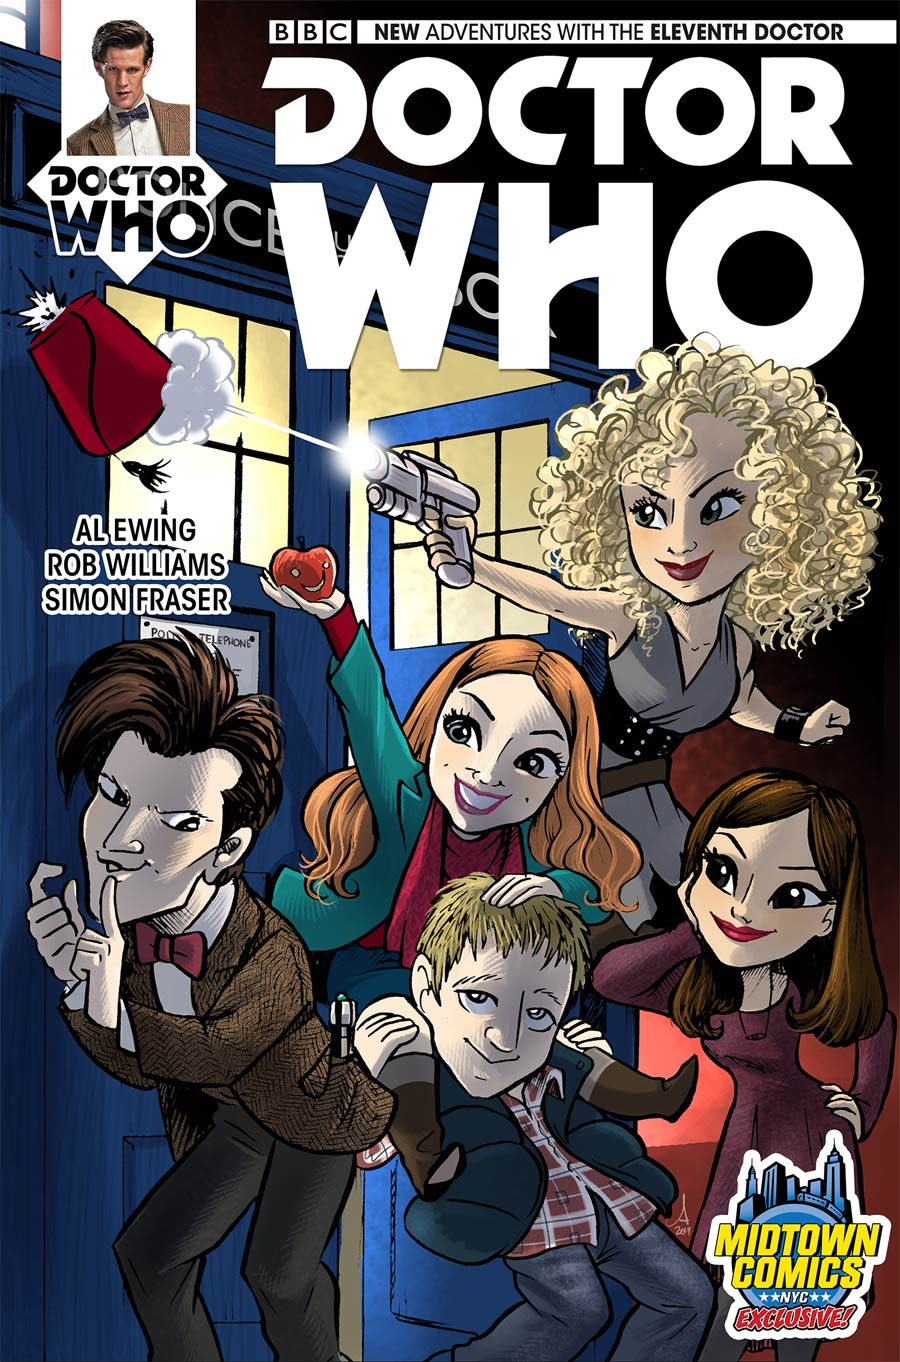 Doctor Who 11th Doctor #1 Cover C Midtown Exclusive Amy Mebberson Variant Cover (2 Of 2)